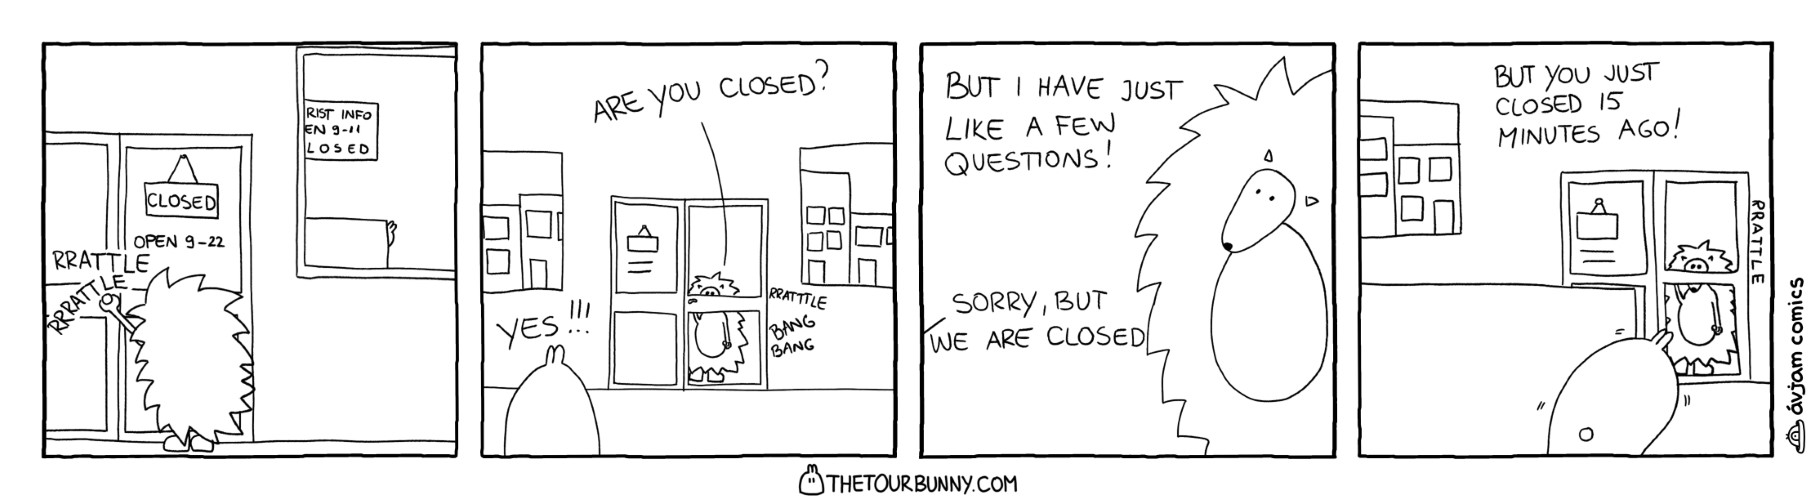 0149 – Are You Open?